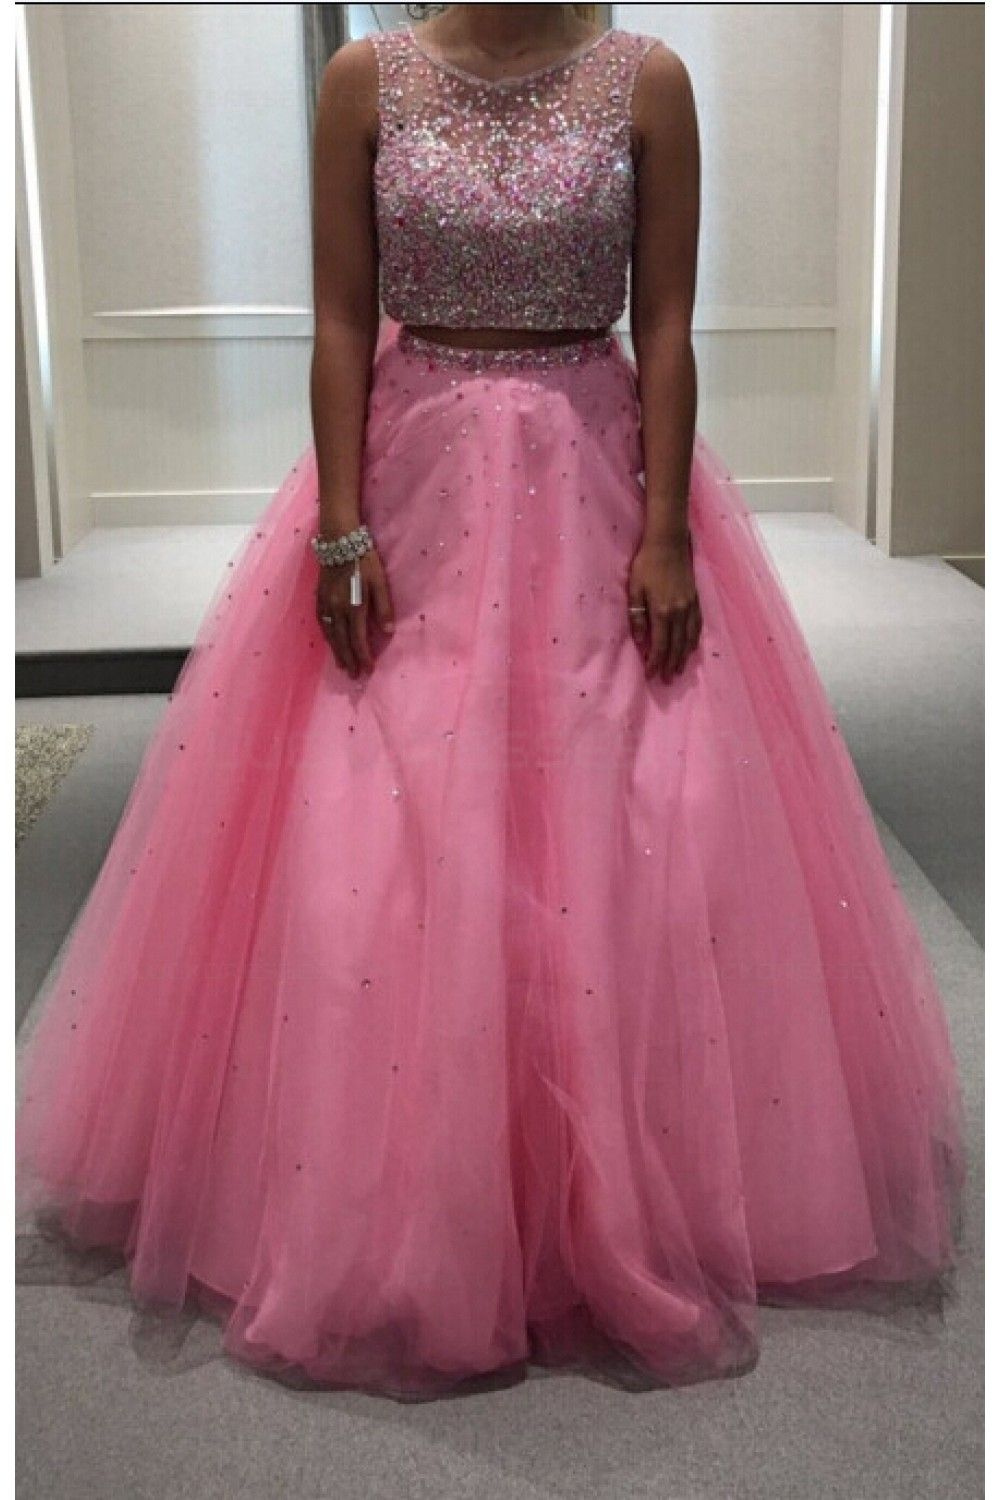 Beaded two pieces long pink keyhole back prom dresses party evening